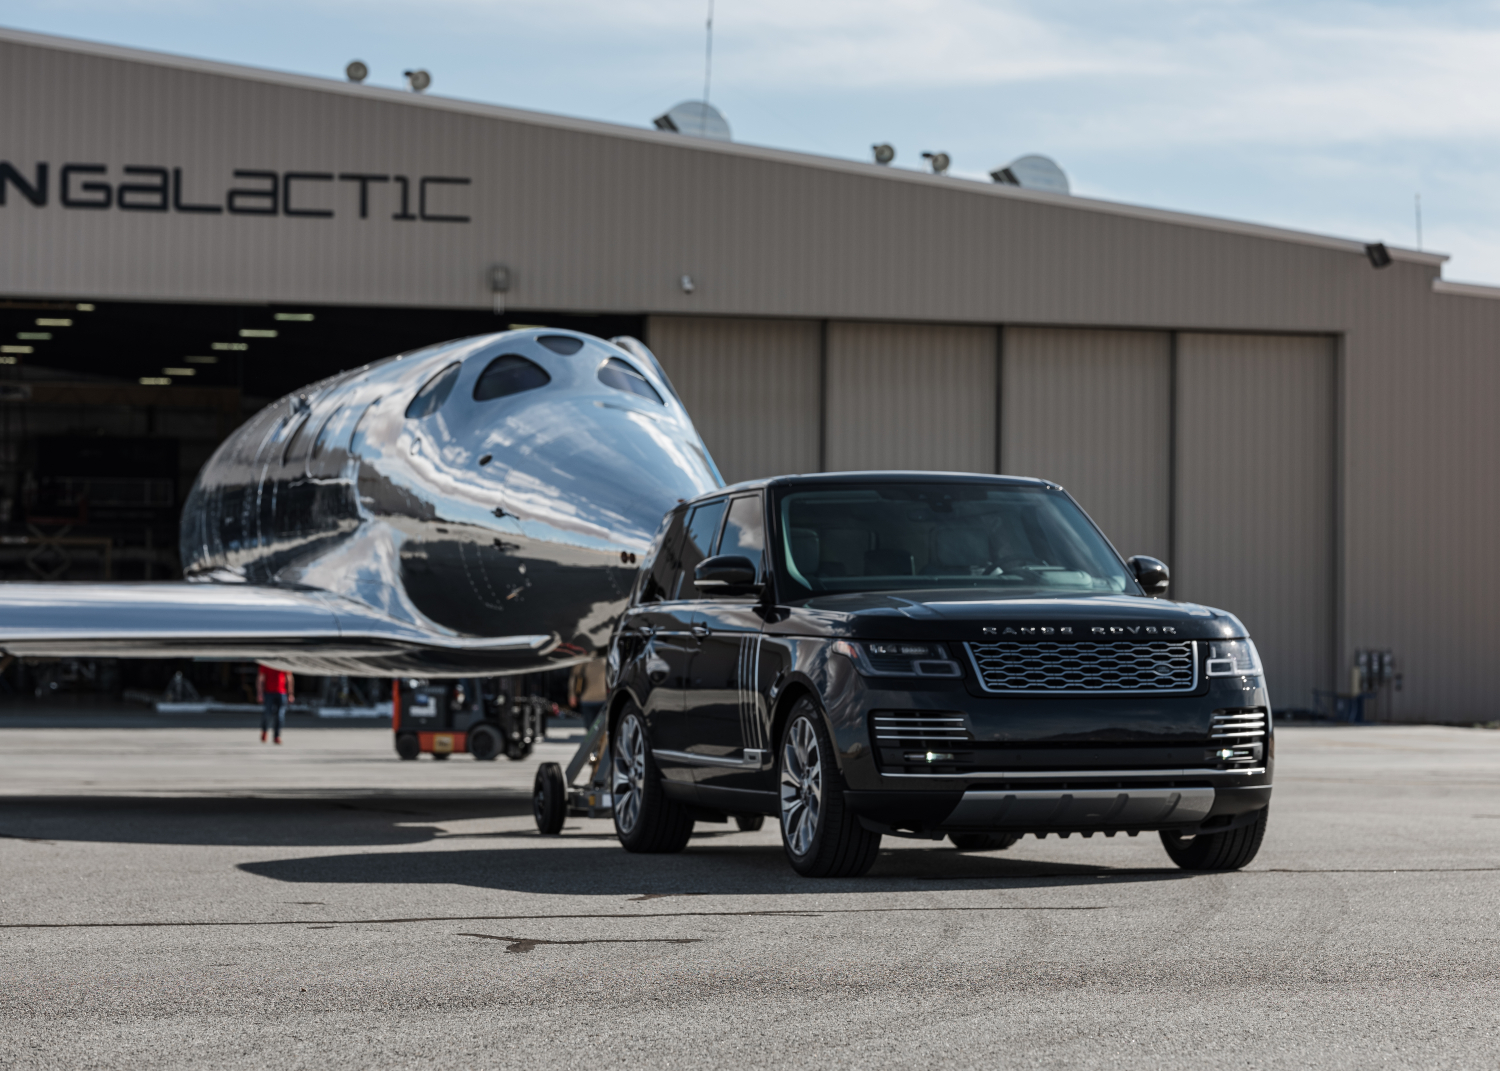 Virgin Galactic and Land Rover Announce Global Partnership Extension as New Spaceship is Revealed - Image 1